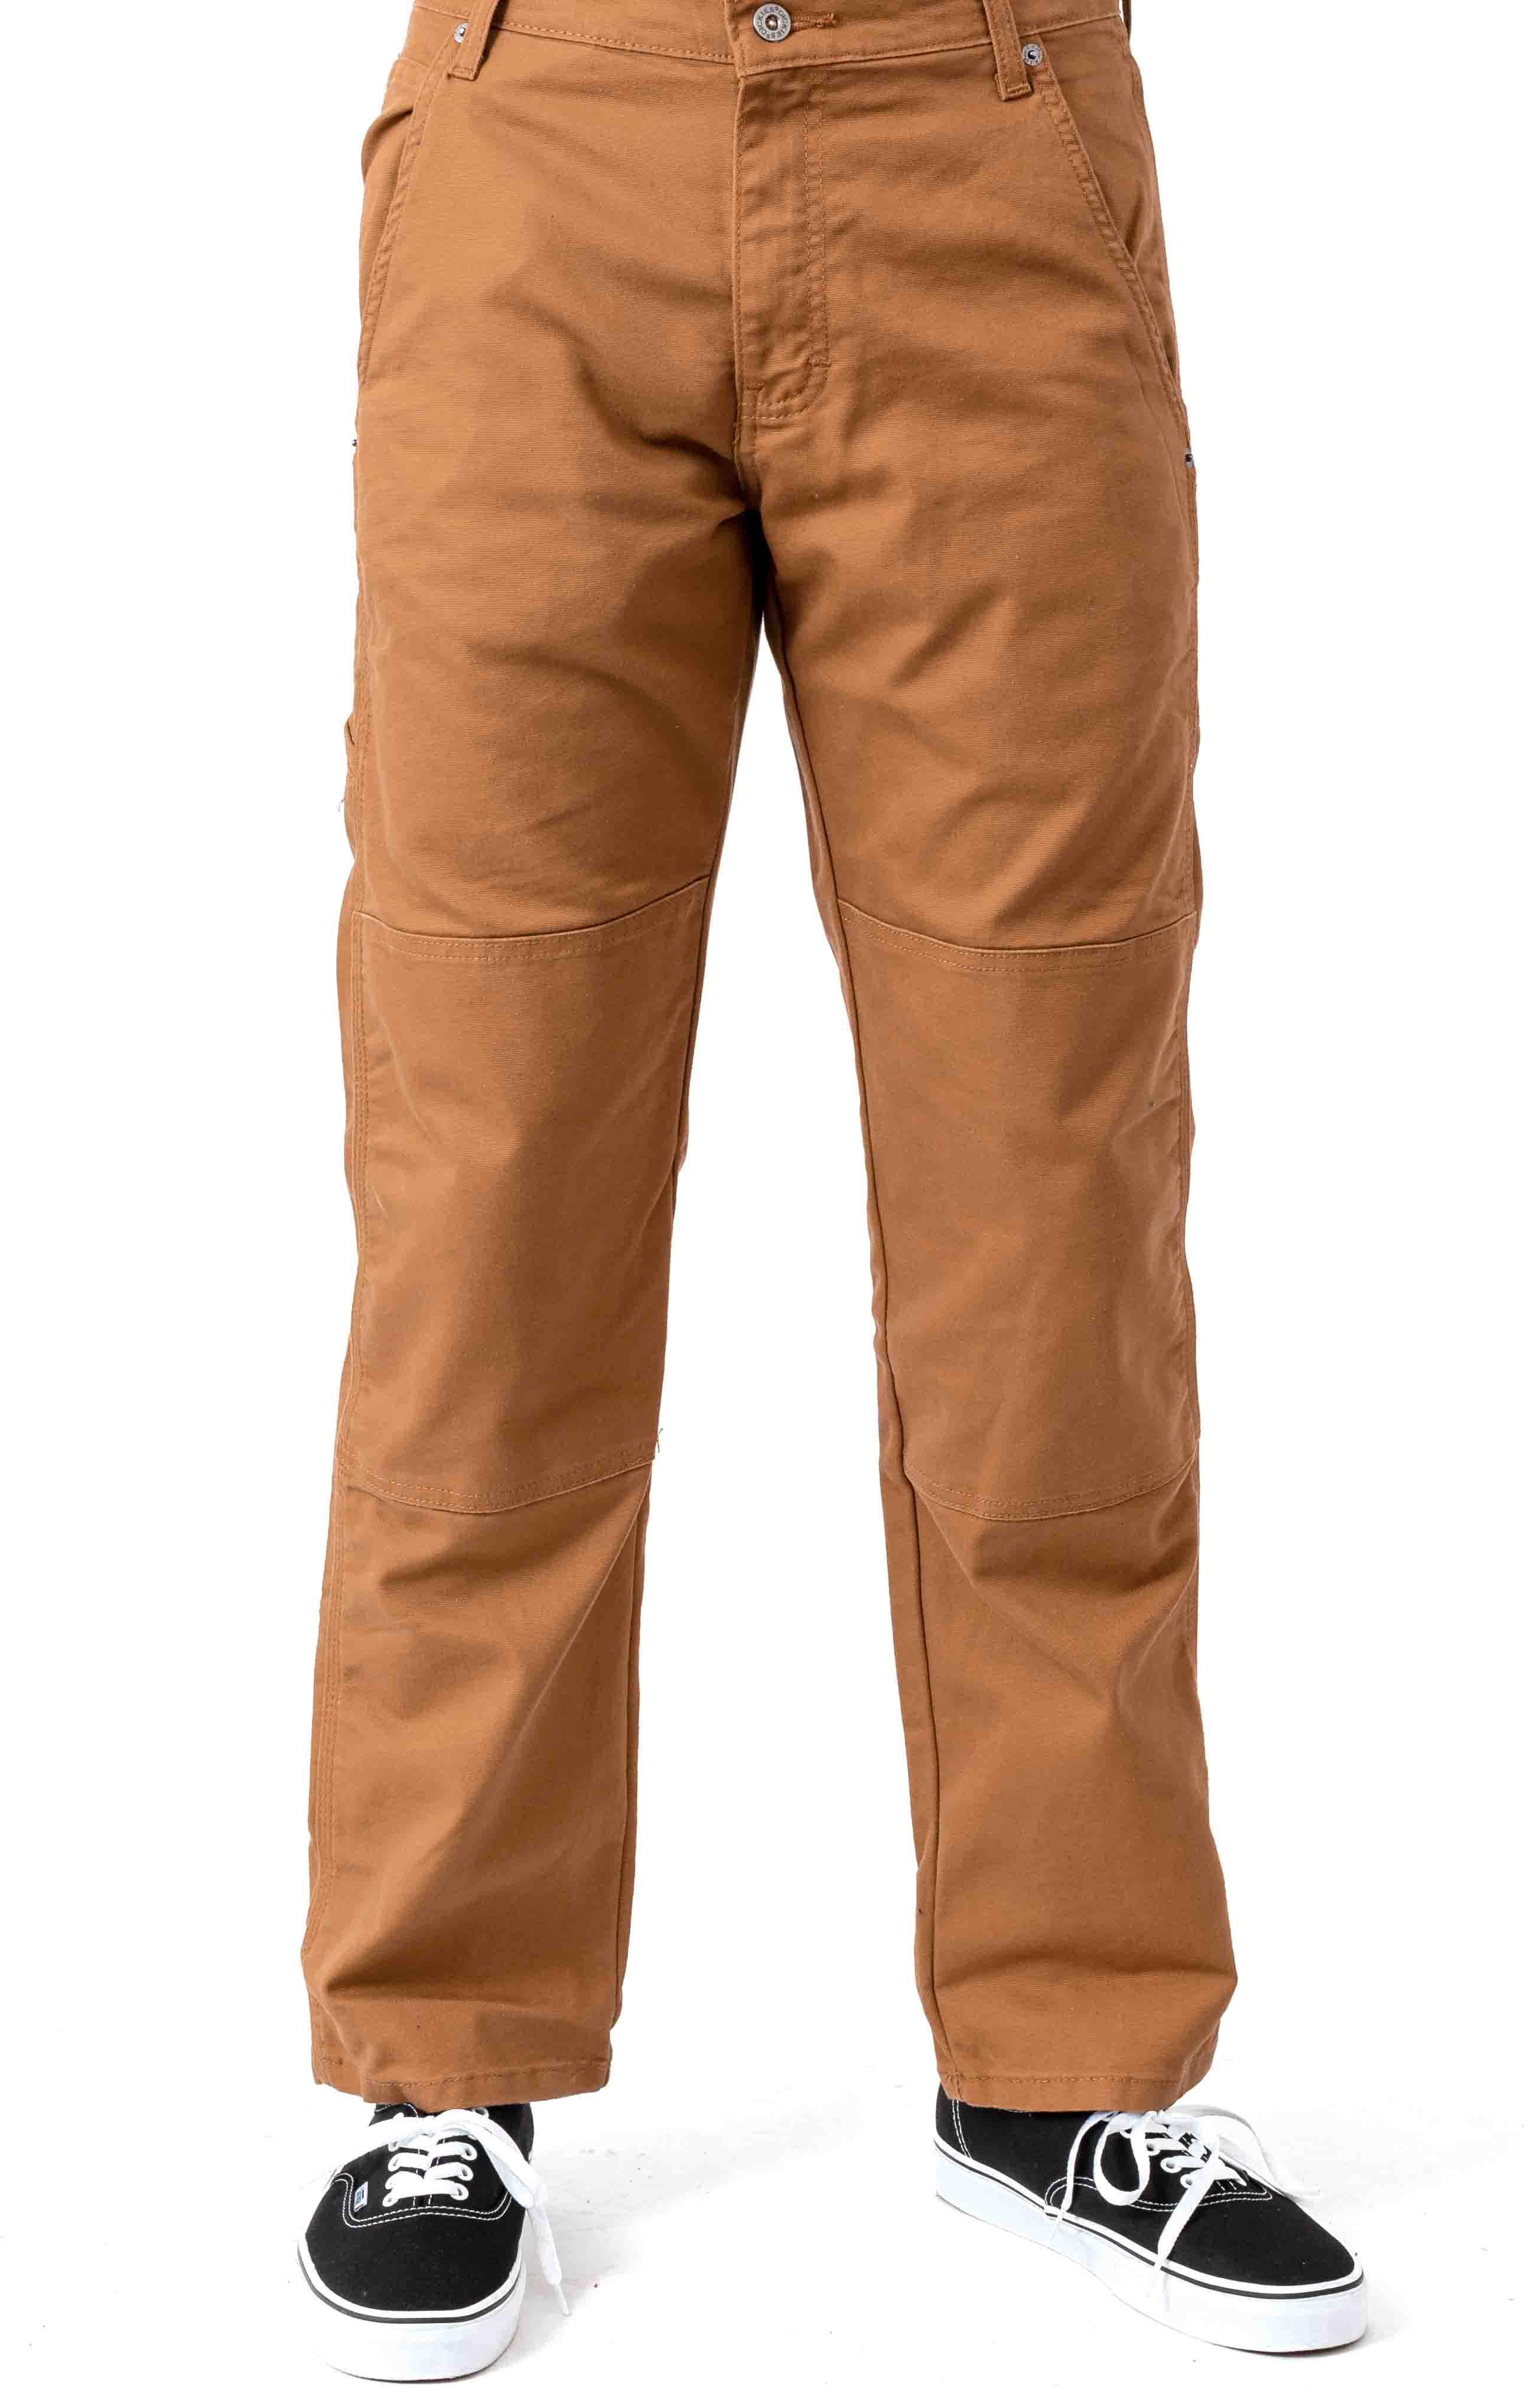 (DP903SBD) FLEX Regular Fit Tough Max Duck Double Knee Pant - Stonewashed Brown Duck 2